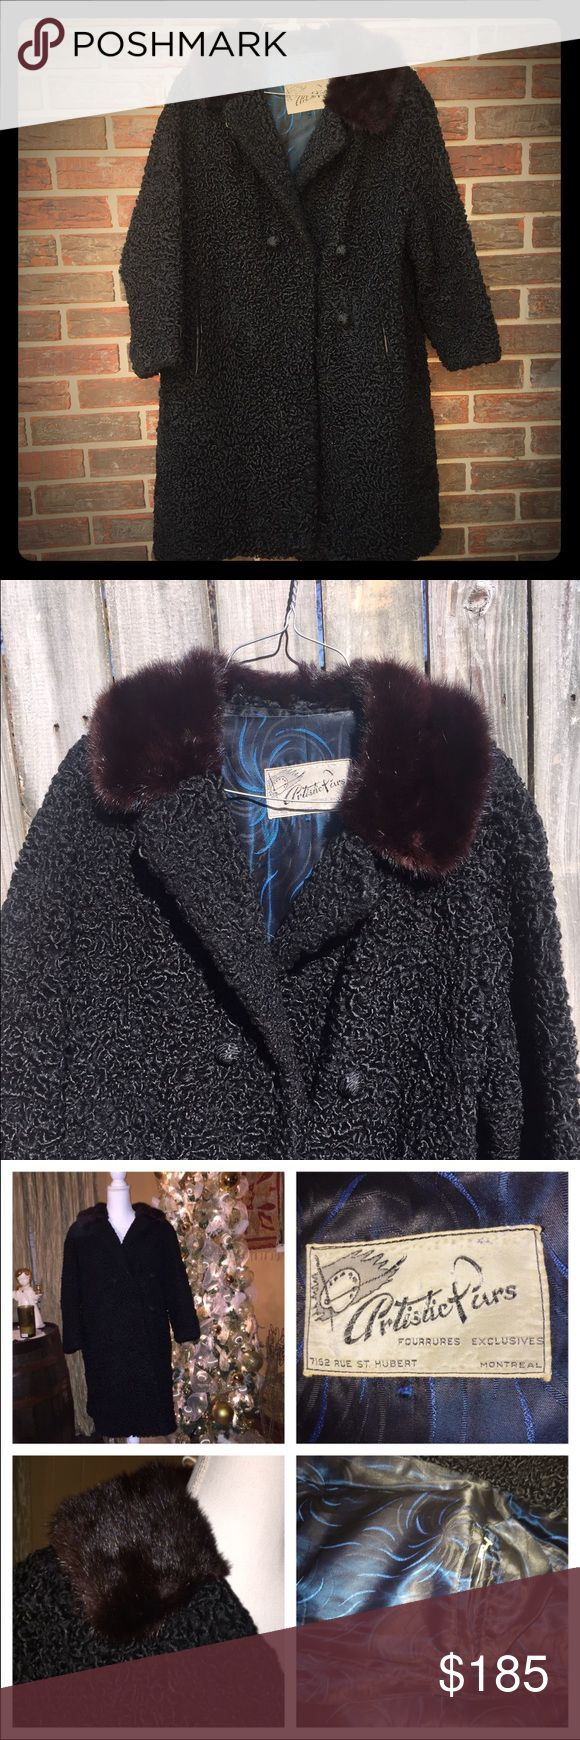 """✨Vintage Persian lamb fur coat✨ Add some glam to your wardrobe✨. Vintage, heavy Persian black lamb fur coat with brown mink collar (50s-60s). Fur has tight, curly pattern. Two hidden hook closure on front. Front pockets accented with a strip of leather at hand area. Satin type lining with a pretty blue design. One inside pocket. One small imperfection (see photo). Inside seam on right arm has came apart about 2"""". Can't be seen when worn & can easily be stitched. Coat is in overall excellent…"""